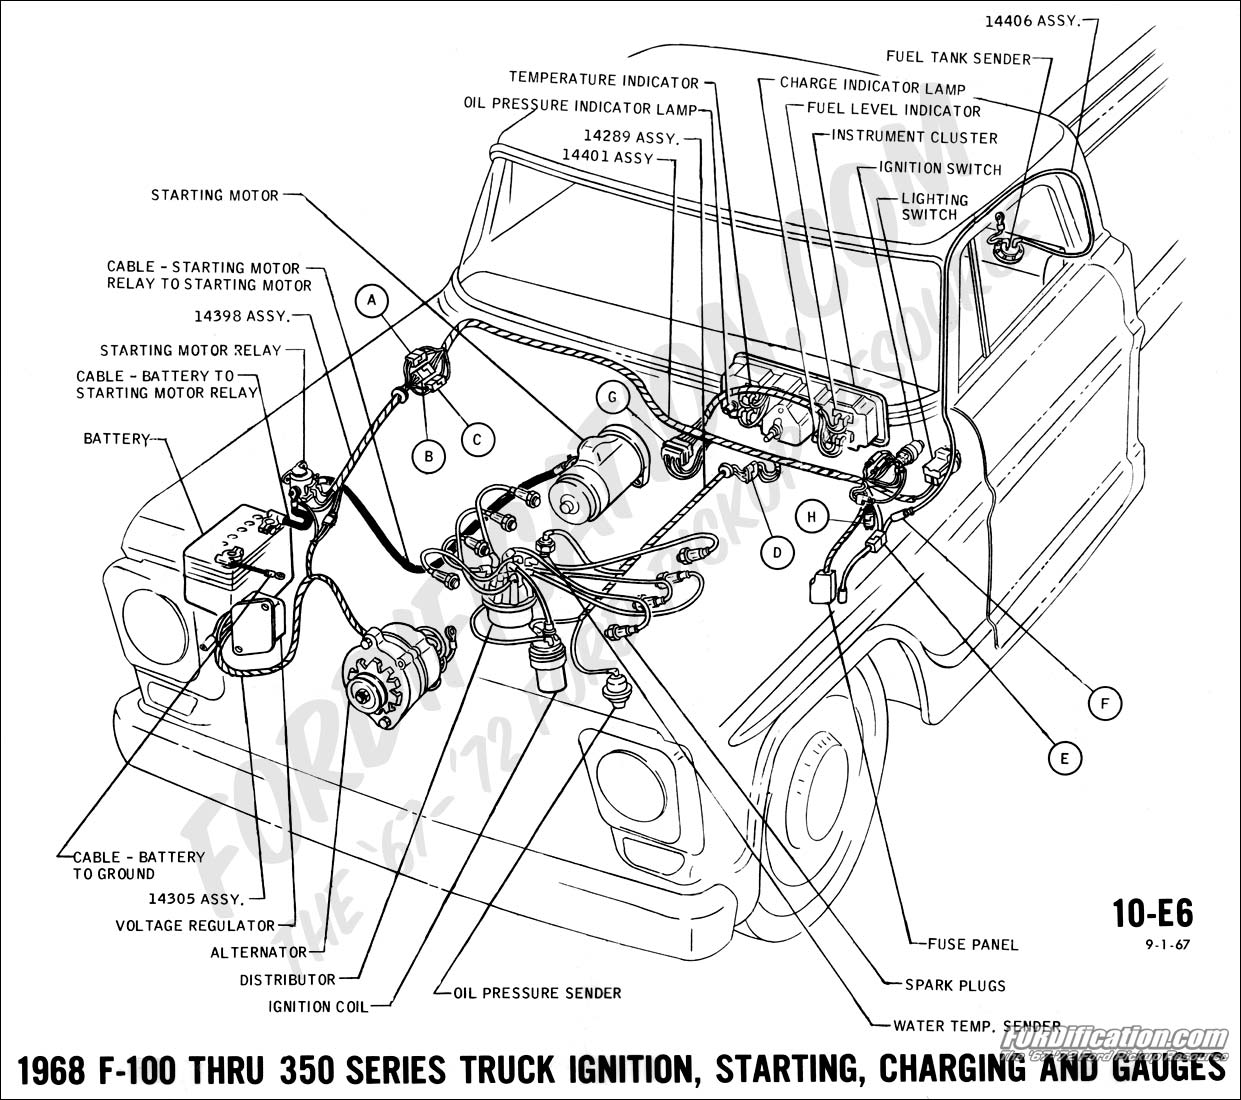 1985 Dodge Ram Headlight Switch Wiring Diagram | Wiring Liry on gm headlight switch parts, chevy alternator regulator wiring diagram, headlight socket wiring diagram, 2001 honda civic headlight wiring diagram, 2001 chevy venture radio wiring diagram, chevrolet wiring diagram, 1957 chevy headlight switch diagram, chevy headlight wiring diagram, gm headlight switch assembly, gm wiring diagrams for dummies, peterbilt headlight wiring diagram, h4 headlight wiring diagram, gm headlight wiring harness, 3 wire headlight wiring diagram, gm upfitter wiring-diagram, 1967 camaro headlight motor wiring diagram, 2000 vw jetta stereo wiring diagram, 55 chevy headlight switch diagram, jeep grand cherokee fuse box diagram, relay wiring diagram,